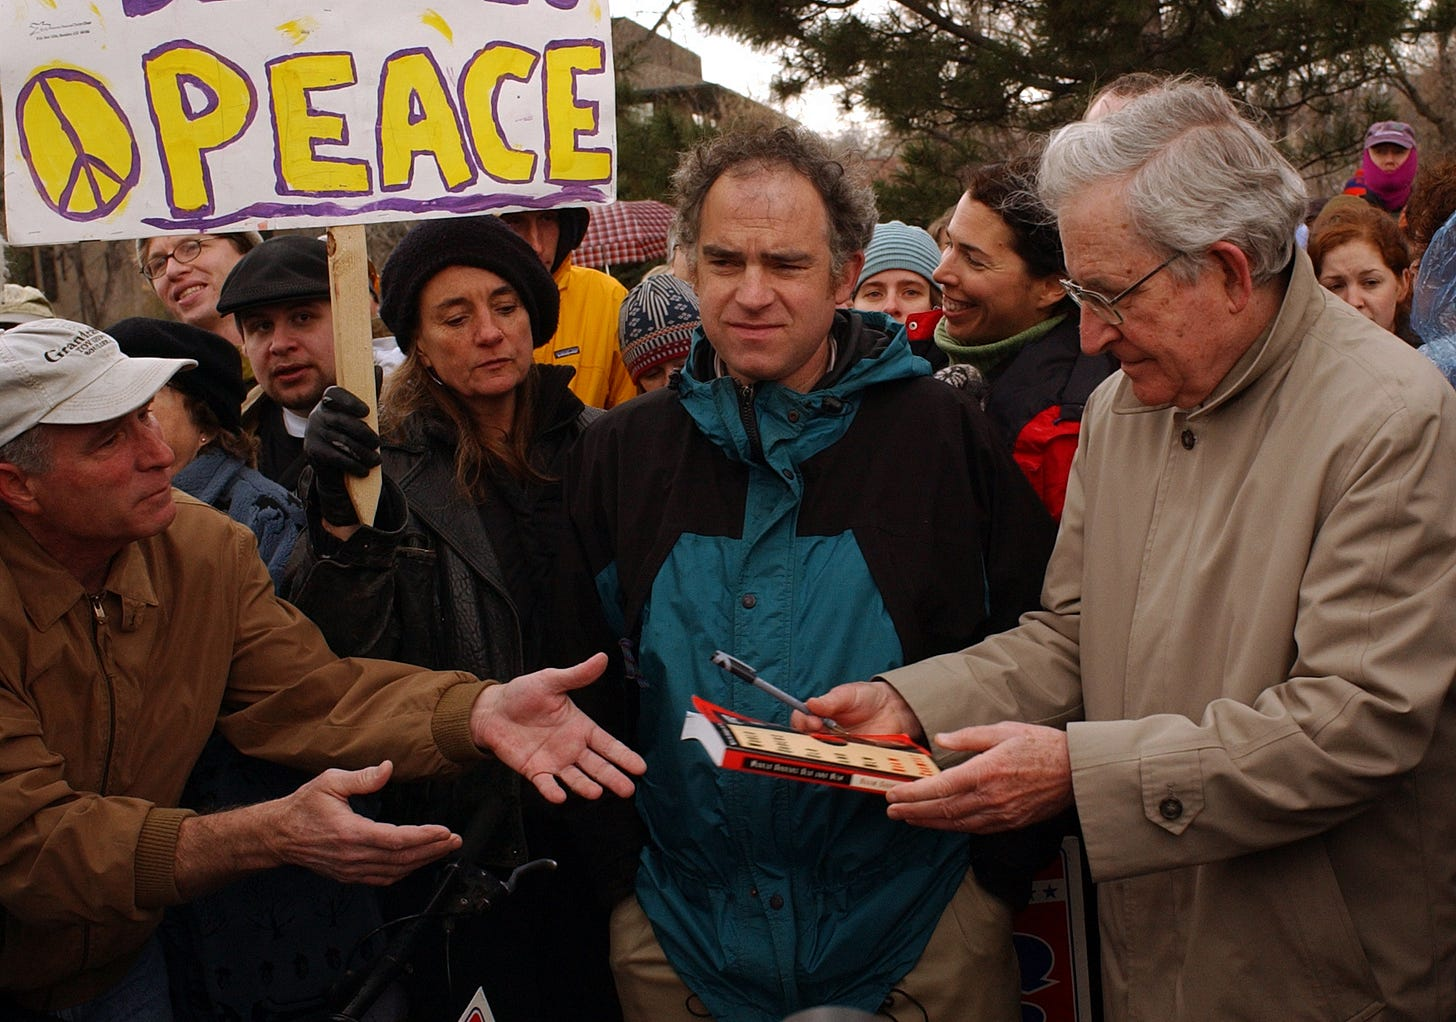 Will Toor & Noam Chomsky in 2003. (Photo: Getty Images)